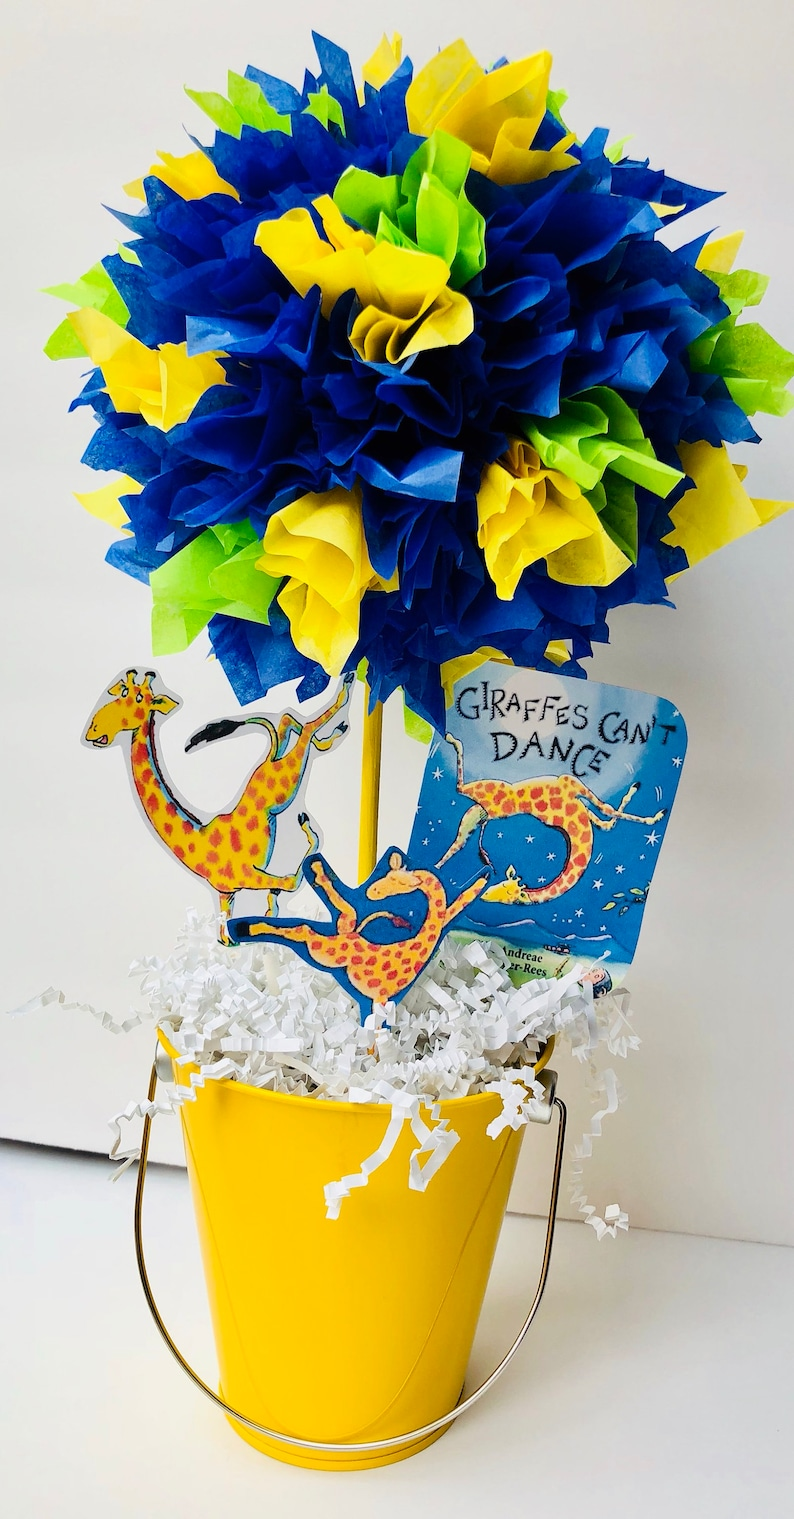 Giraffes cant dance baby shower centerpiece giraffes cant image 0